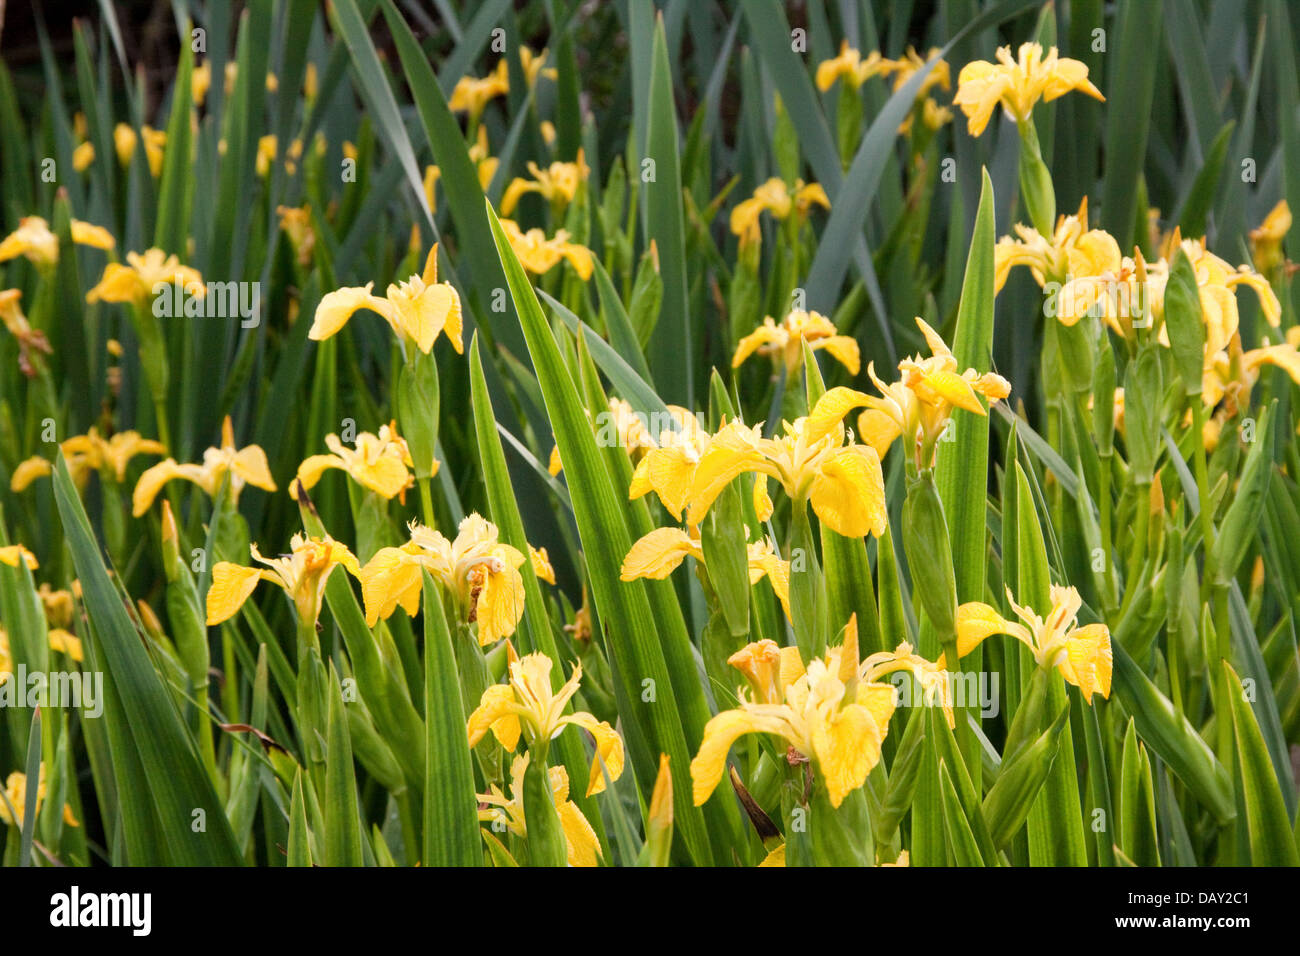 gelbe blume iris pseudacorus iridaceae stockfoto bild 58372273 alamy. Black Bedroom Furniture Sets. Home Design Ideas